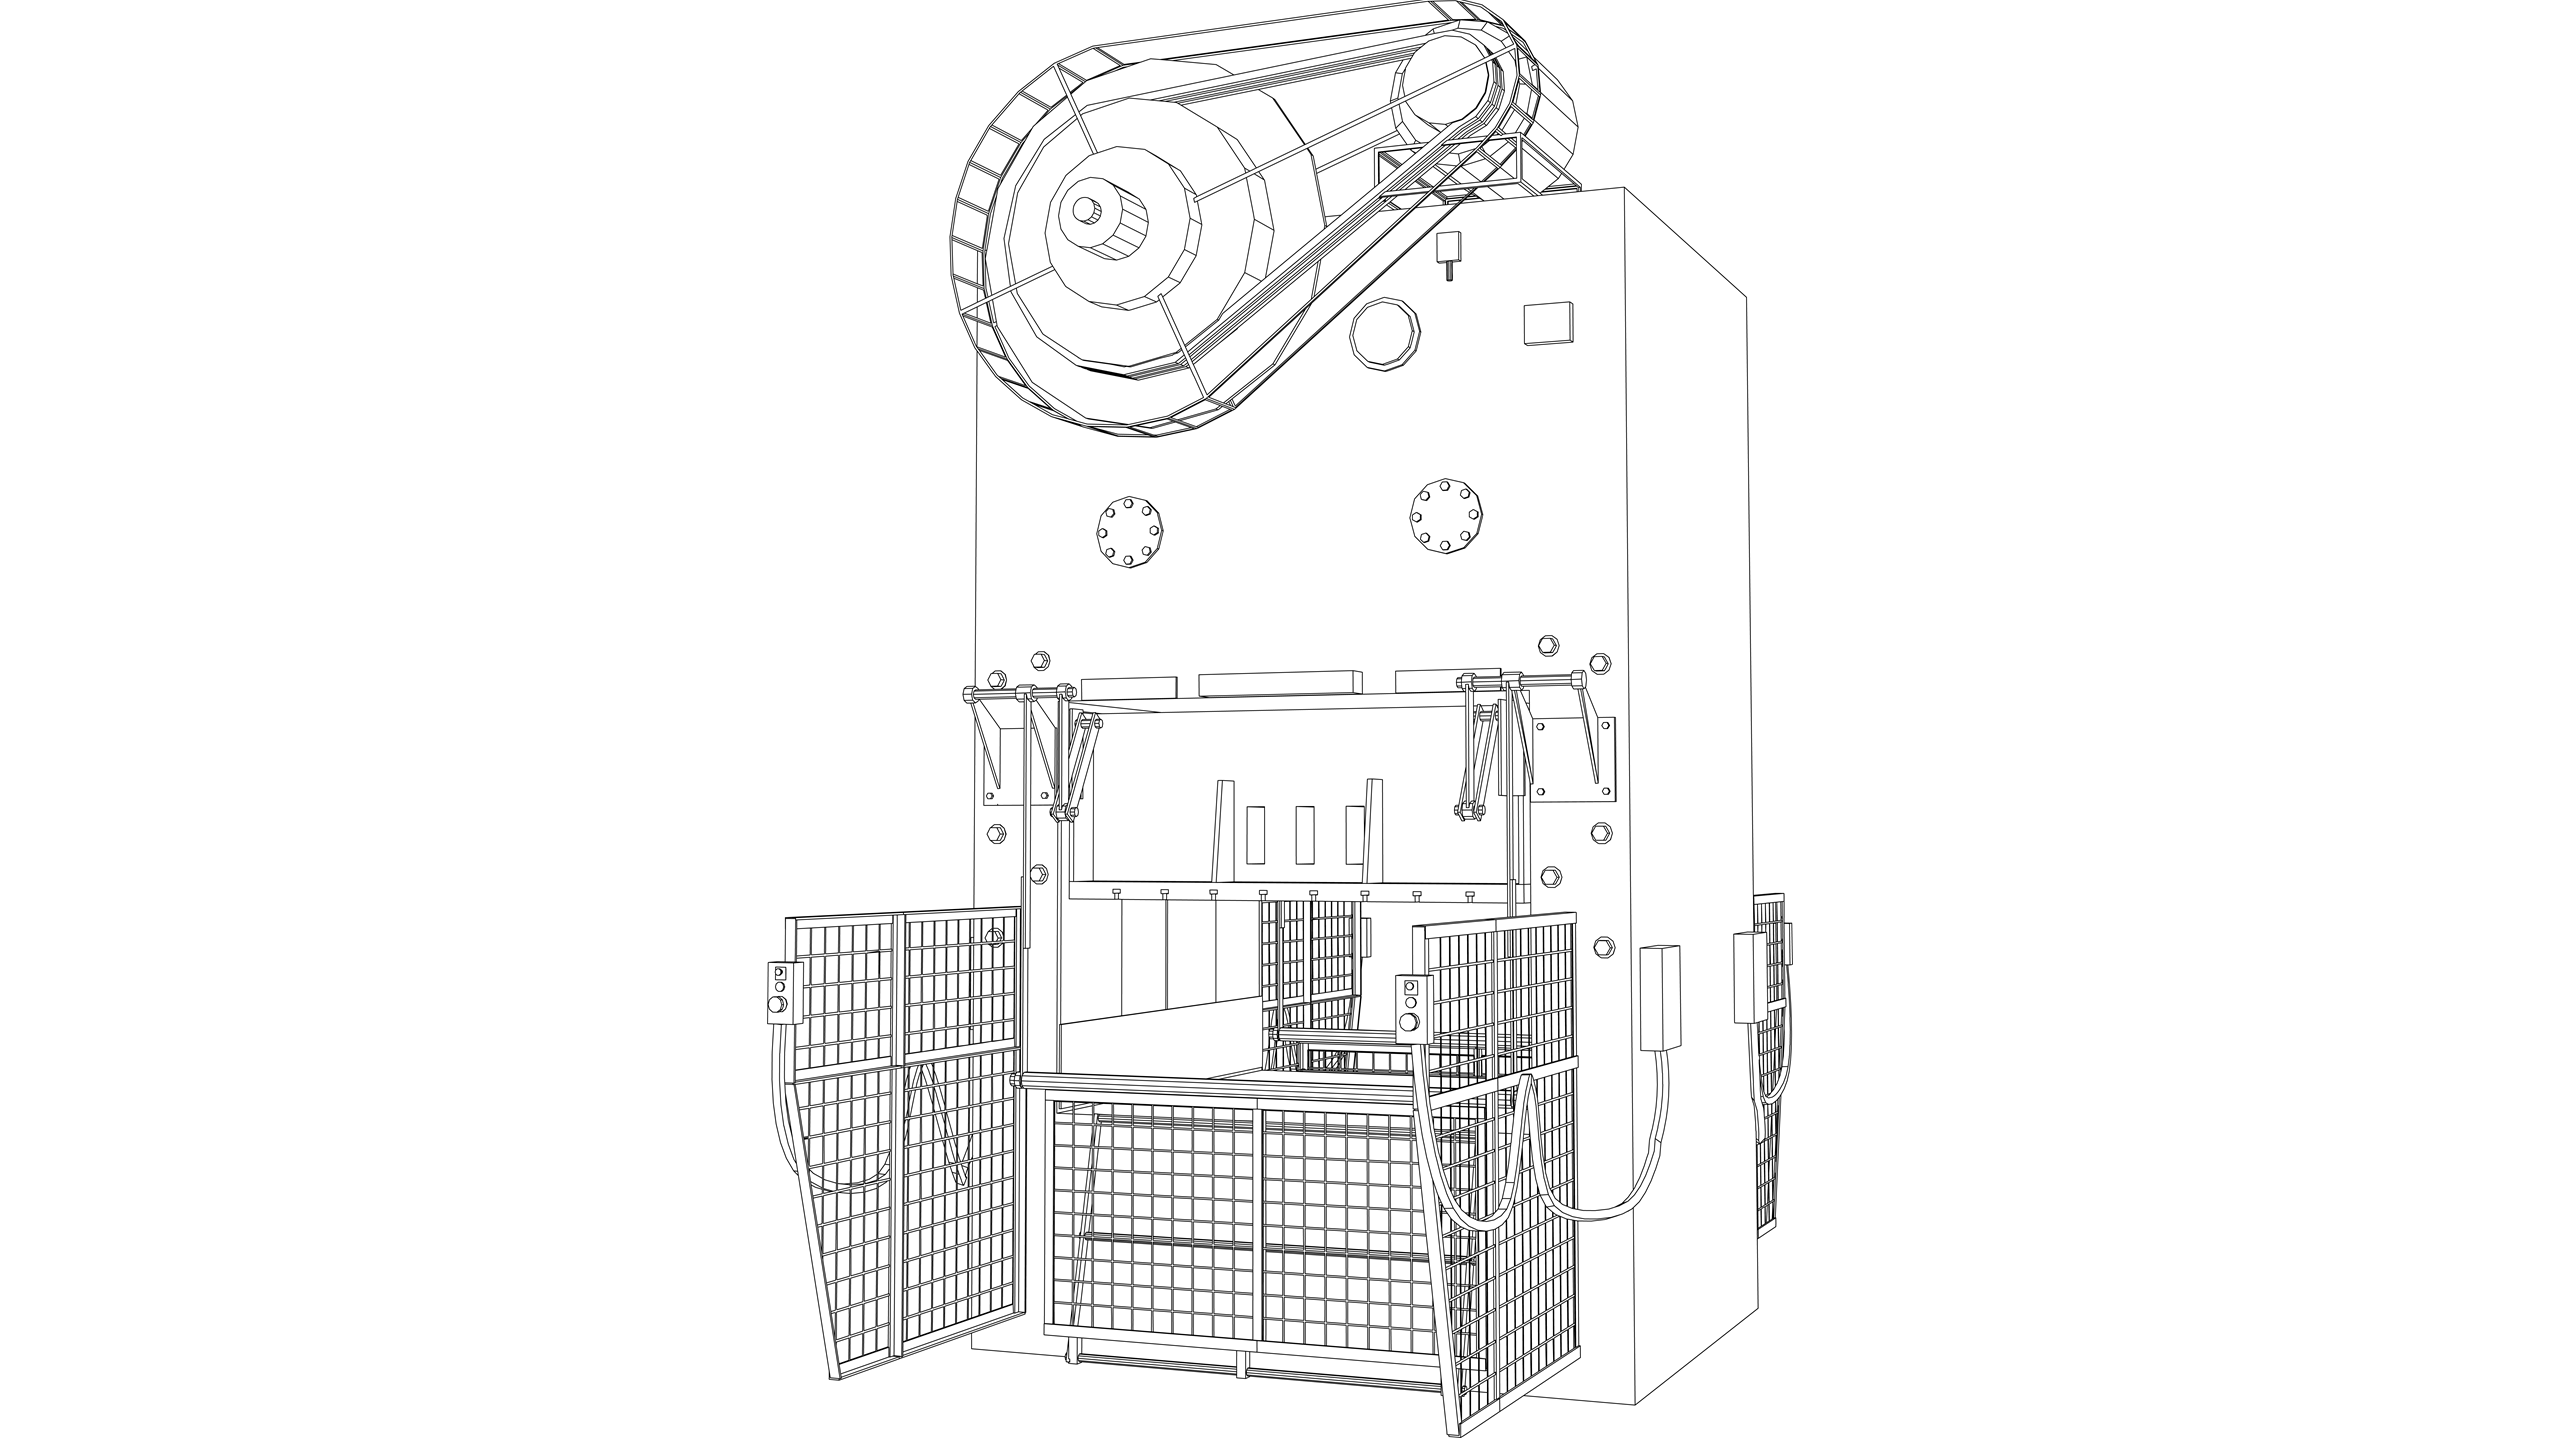 Vector Image: Power Press (Electric - Automatic Guard)